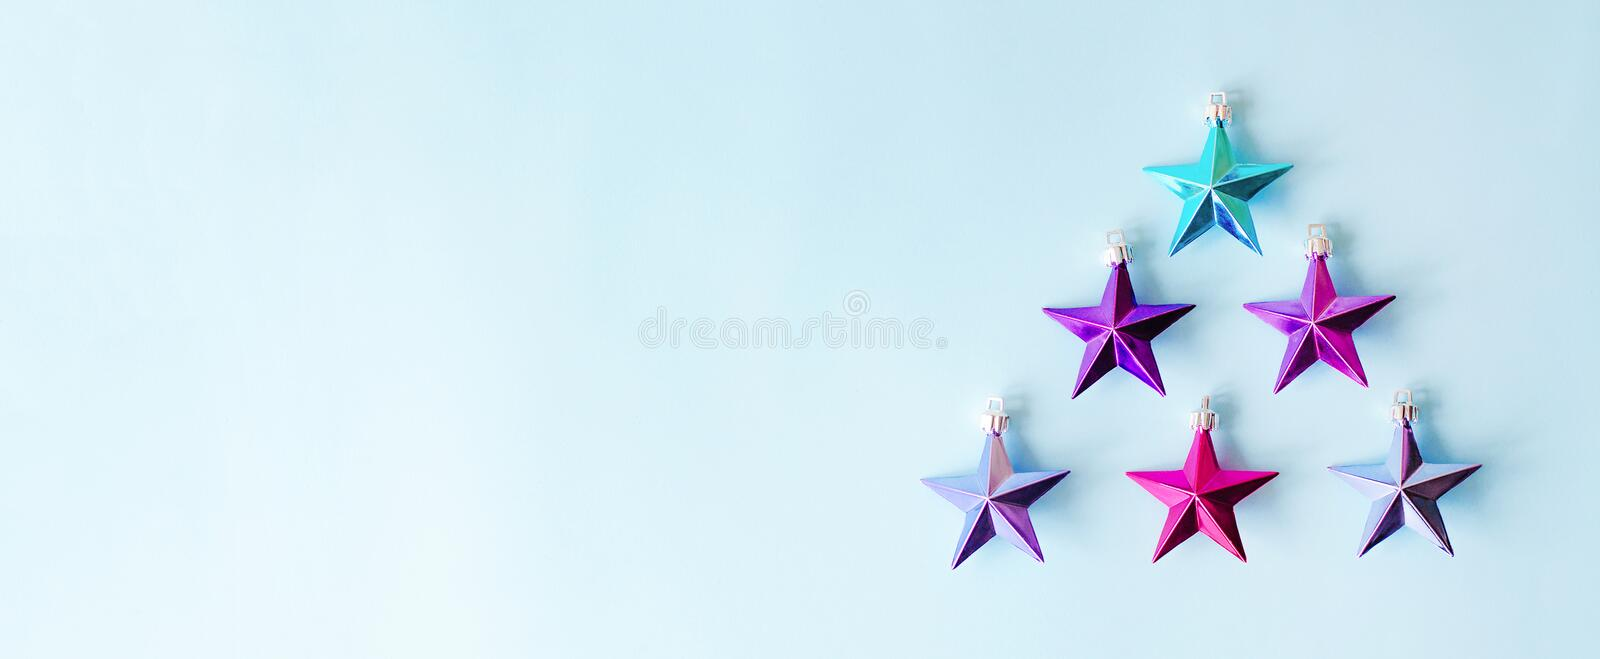 Many metallic stars in the shape of a Christmas tree. royalty free stock image